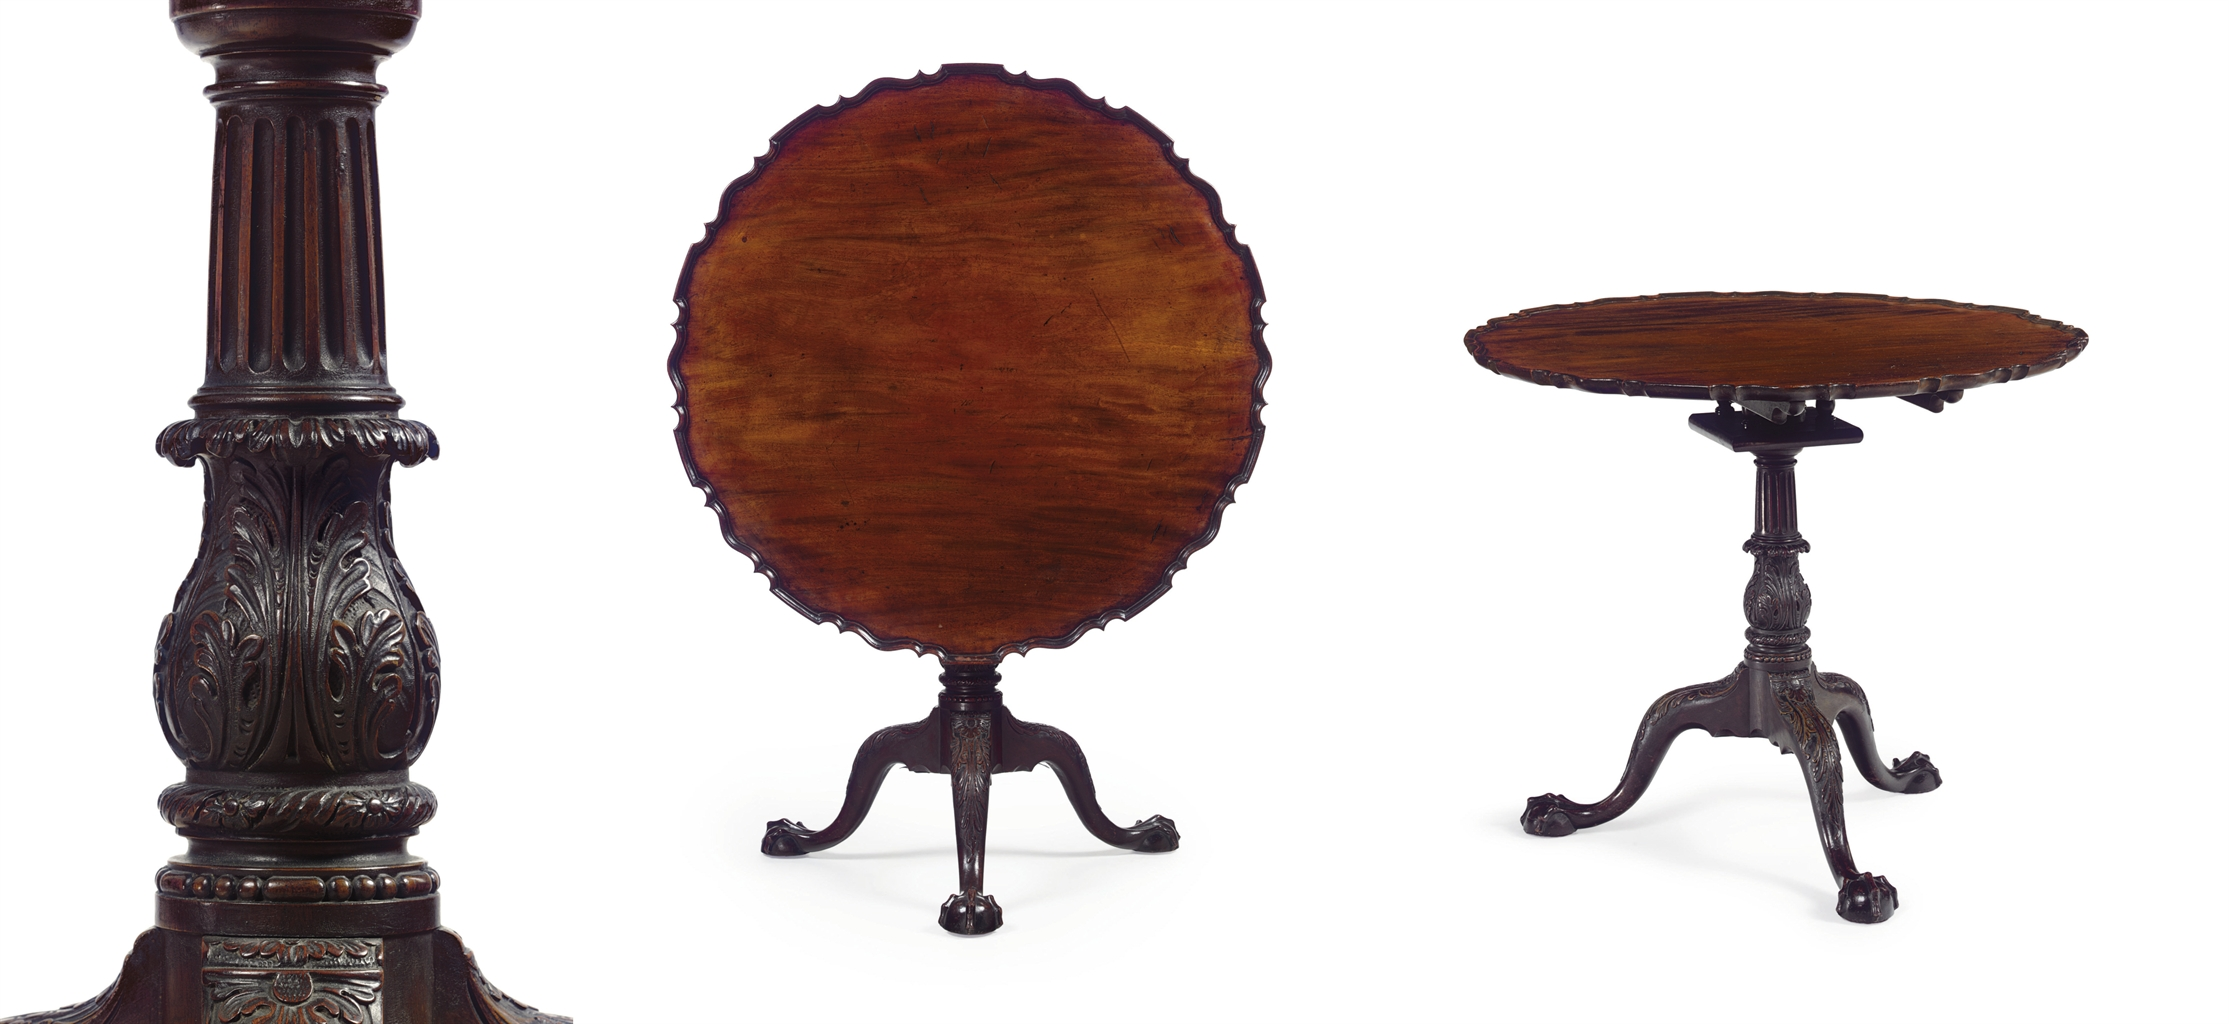 THE STEVENSON FAMILY CHIPPENDALE MAHOGANY SCALLOPED-TOP TEA TABLE